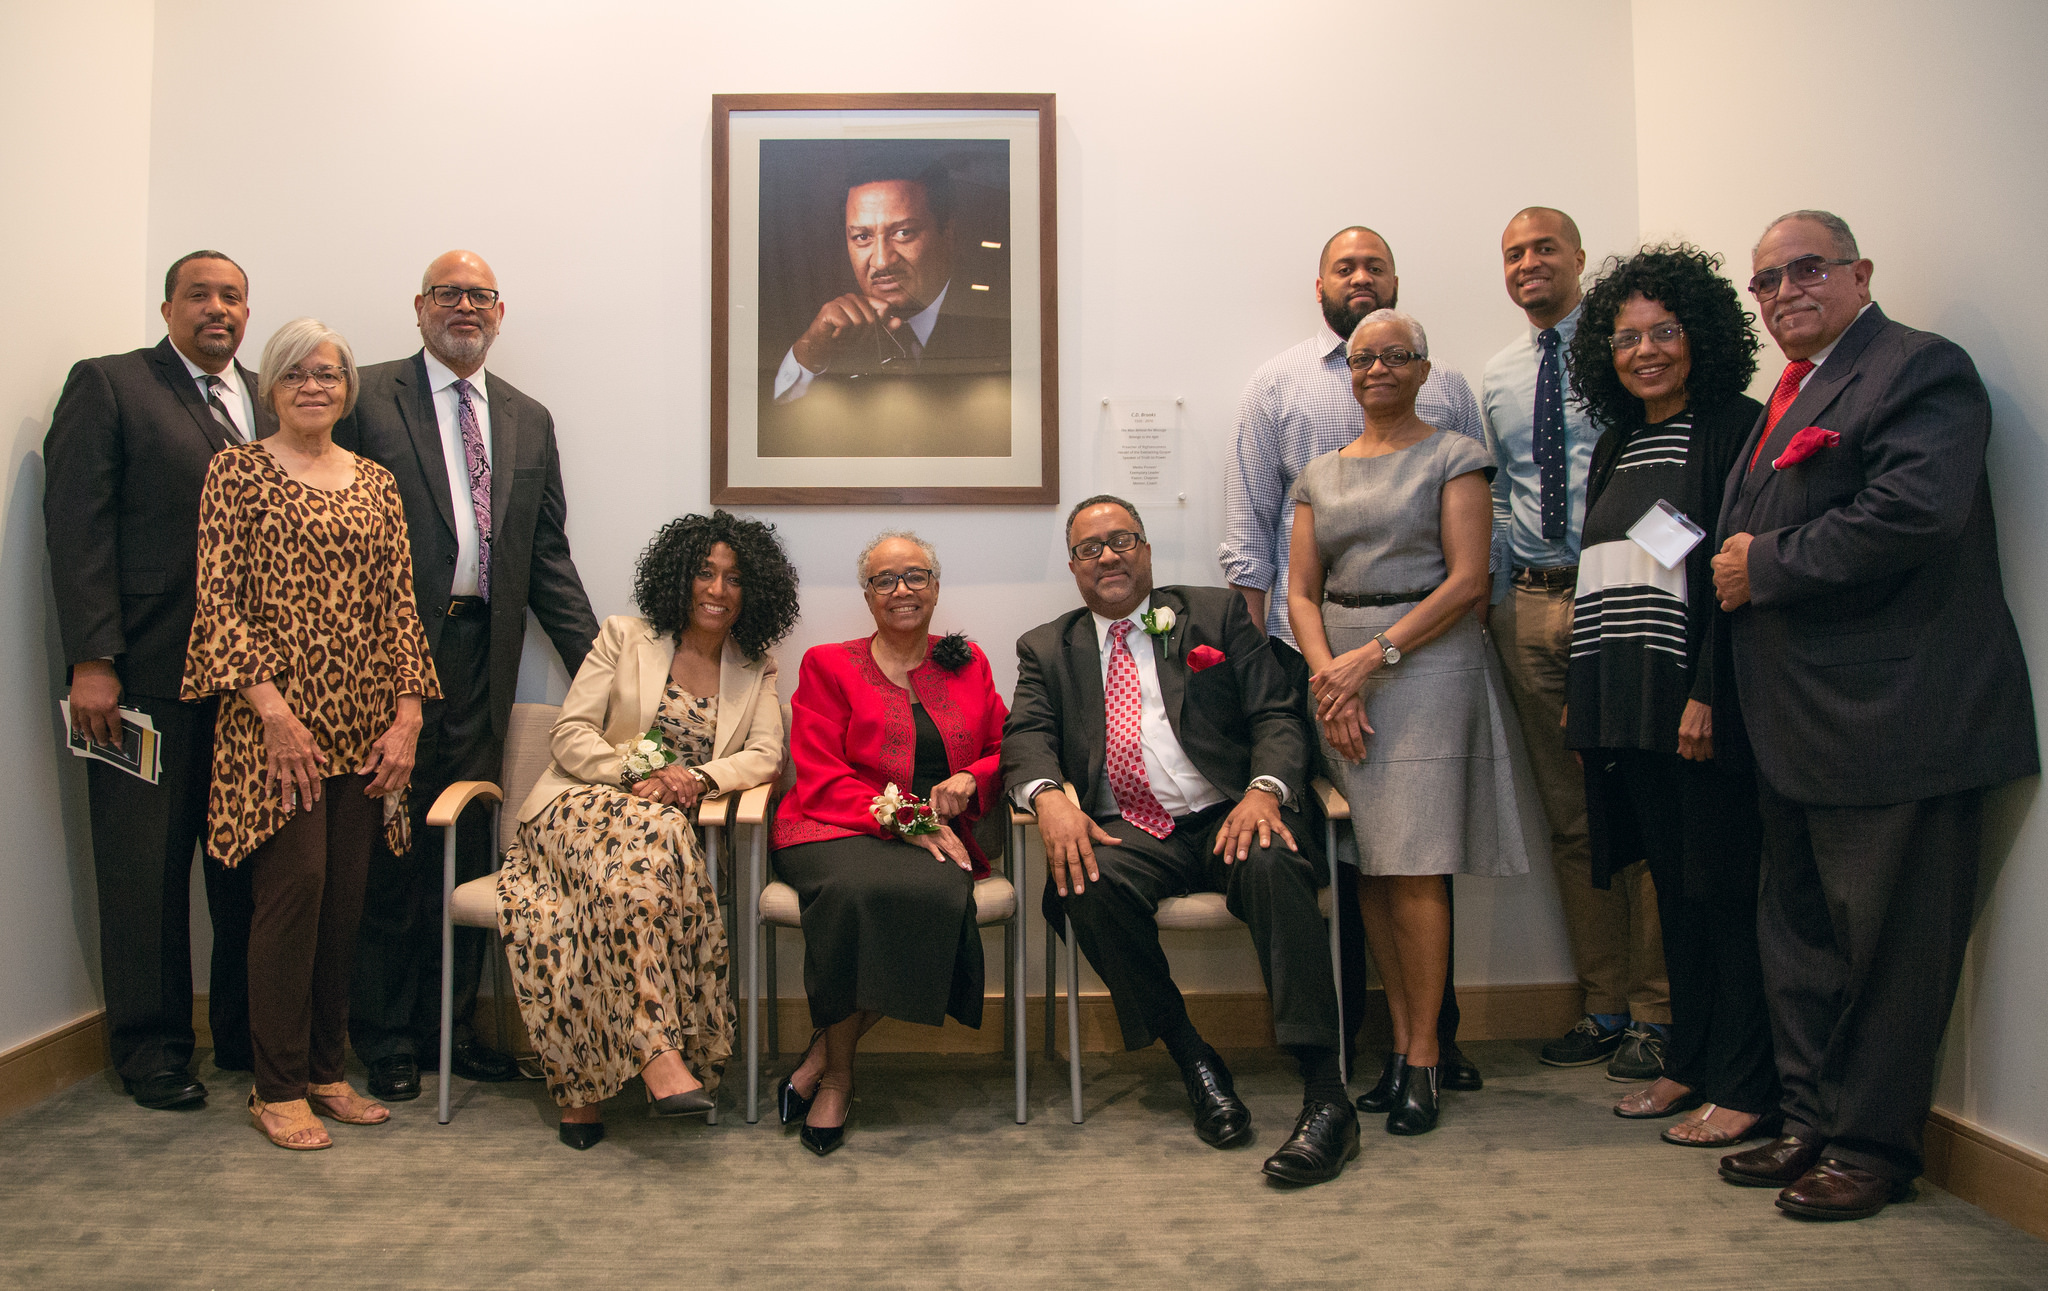 Members of the Brooks family pose under portrait of C.D. Brooks in the division headquarter's prayer chapel.